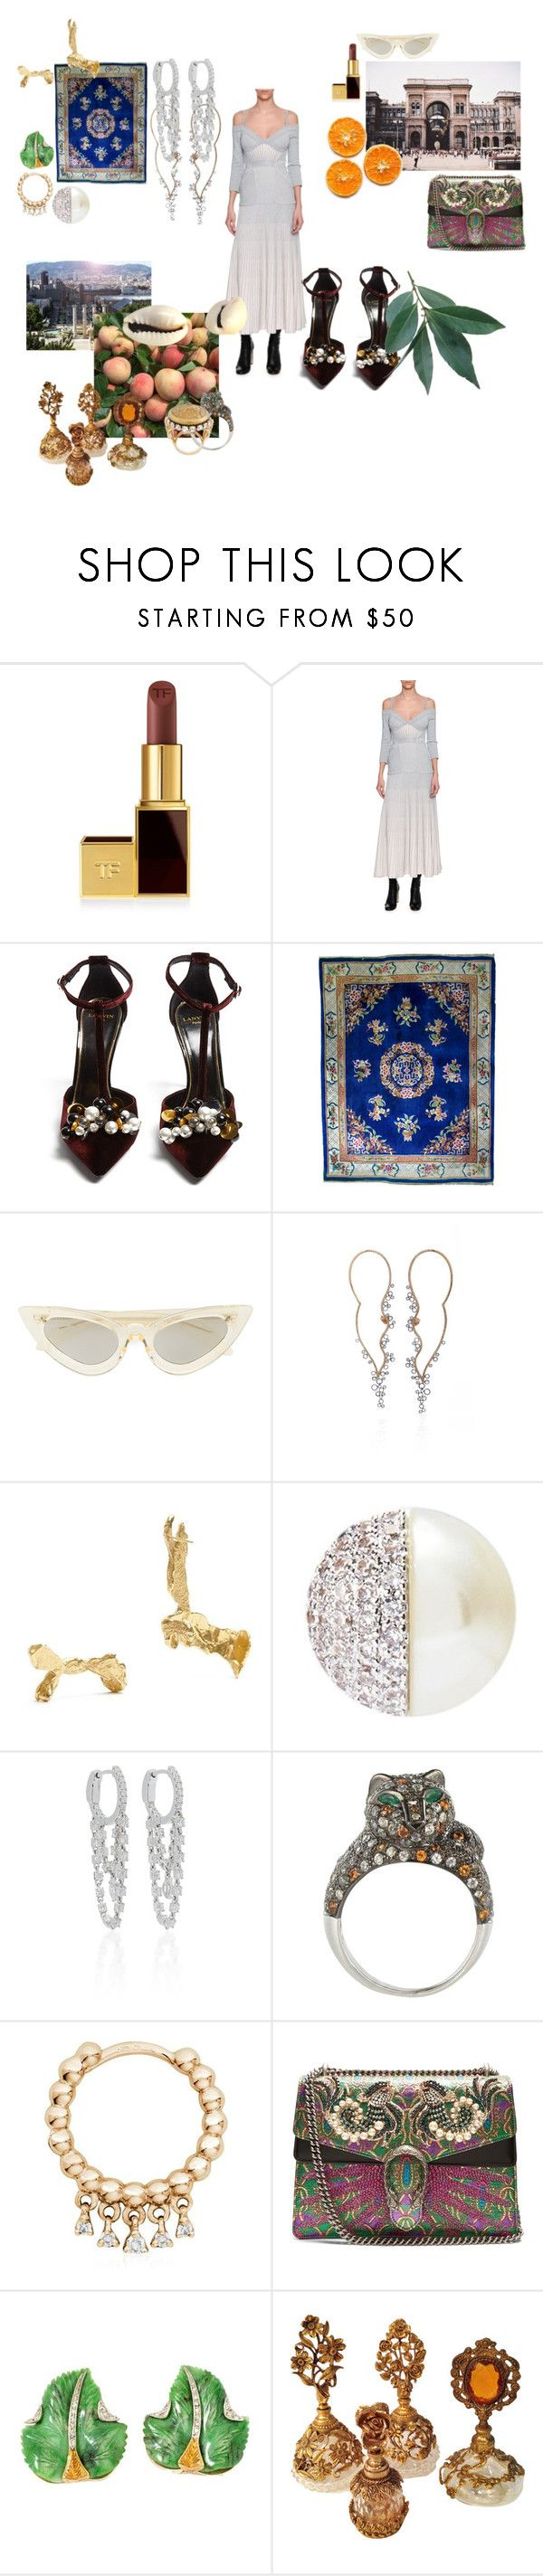 """""""monaco"""" by mymind-is-a-warrior ❤ liked on Polyvore featuring Tom Ford, Alexander McQueen, Lanvin, Kuboraum, Pieces, CZ by Kenneth Jay Lane, Anita Ko, Stone Paris, Gucci and Dolce&Gabbana"""